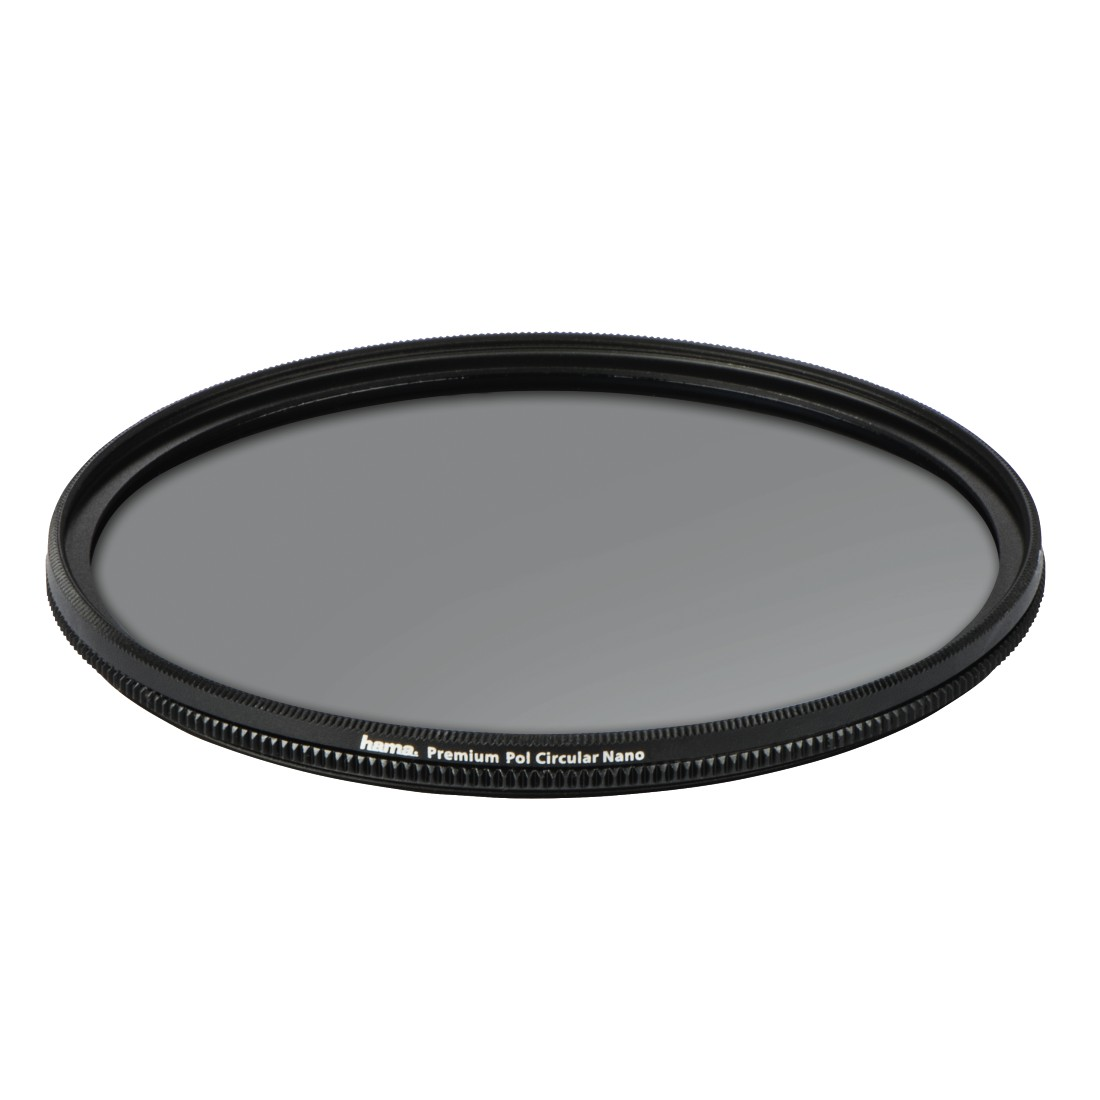 "abx High-Res Image - Hama, ""Premium"" Polar Filter, Cir., 67 mm width, Nano, Super-coated: 18 layers"